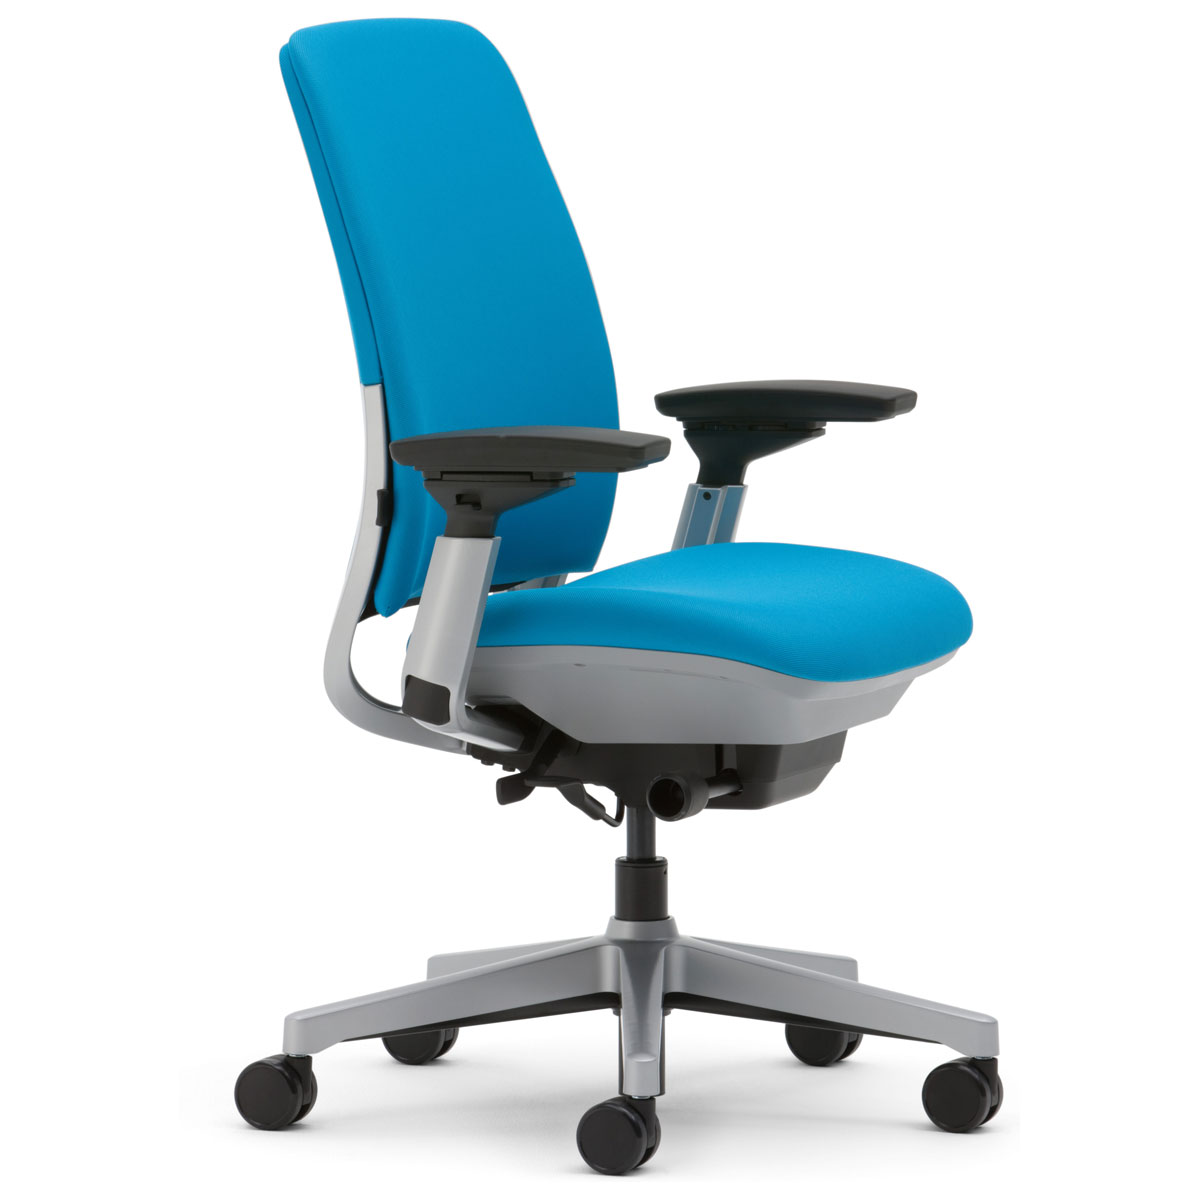 Steelcase Chair Steelcase Amia Chair Steelcase Amia Chair Family